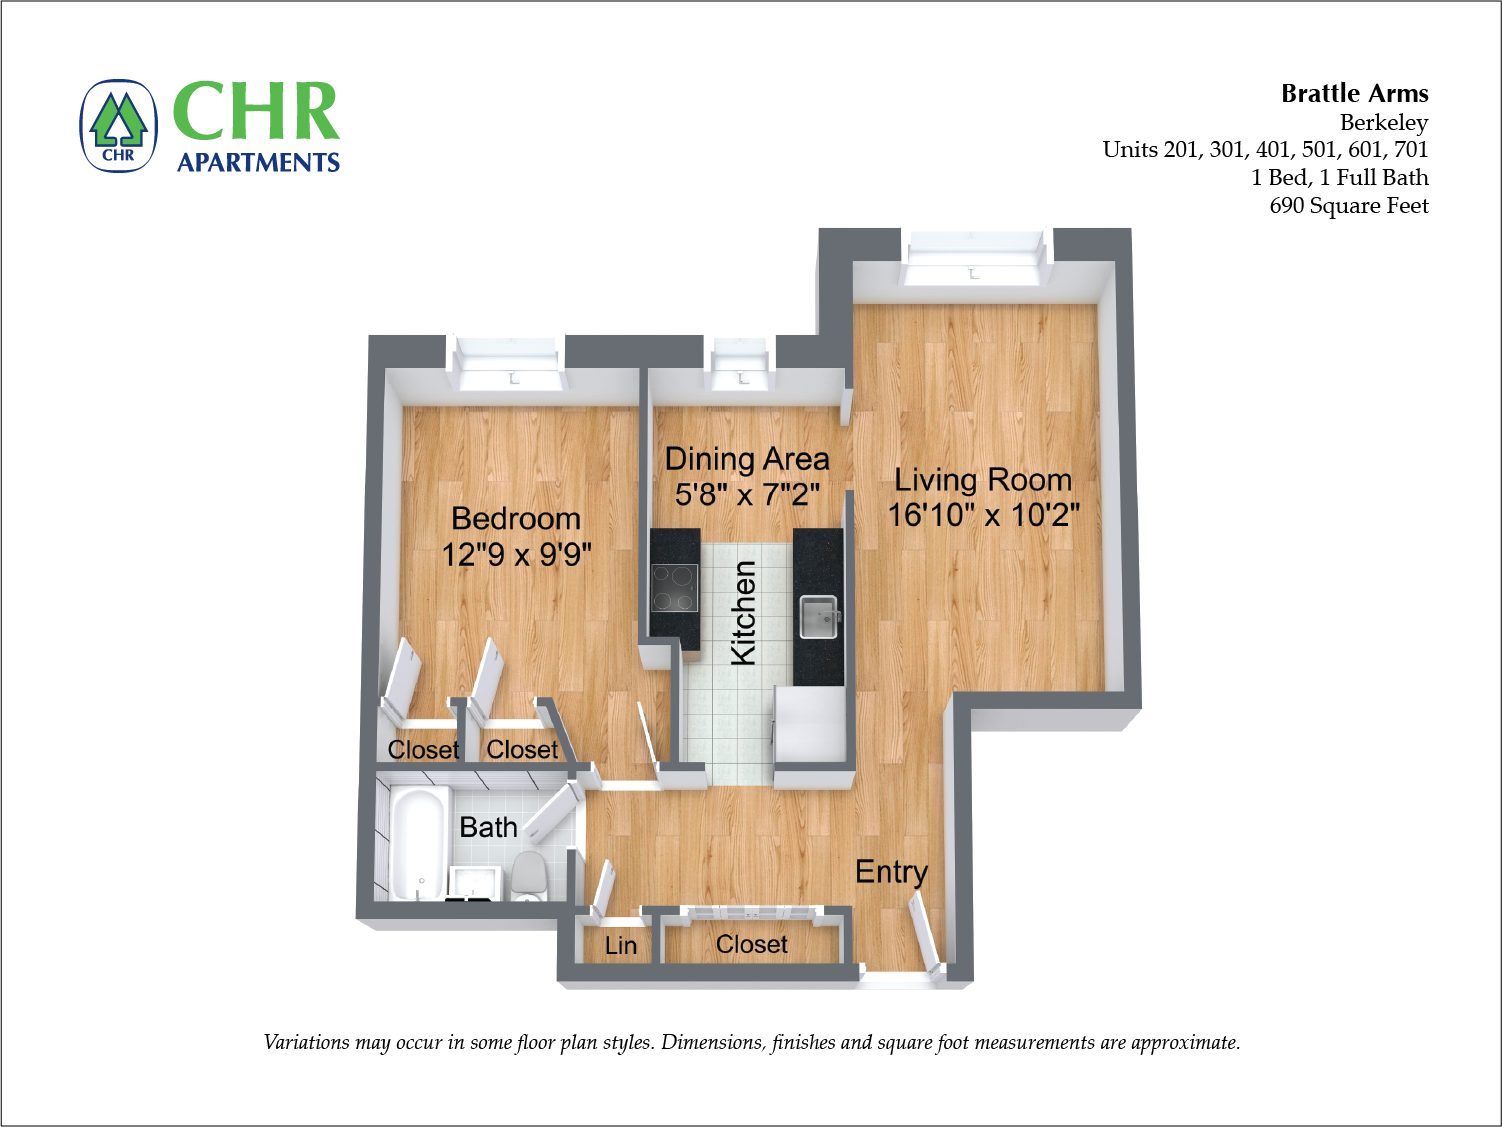 Click to view Brattle Arms - 1 Bedroom floor plan gallery